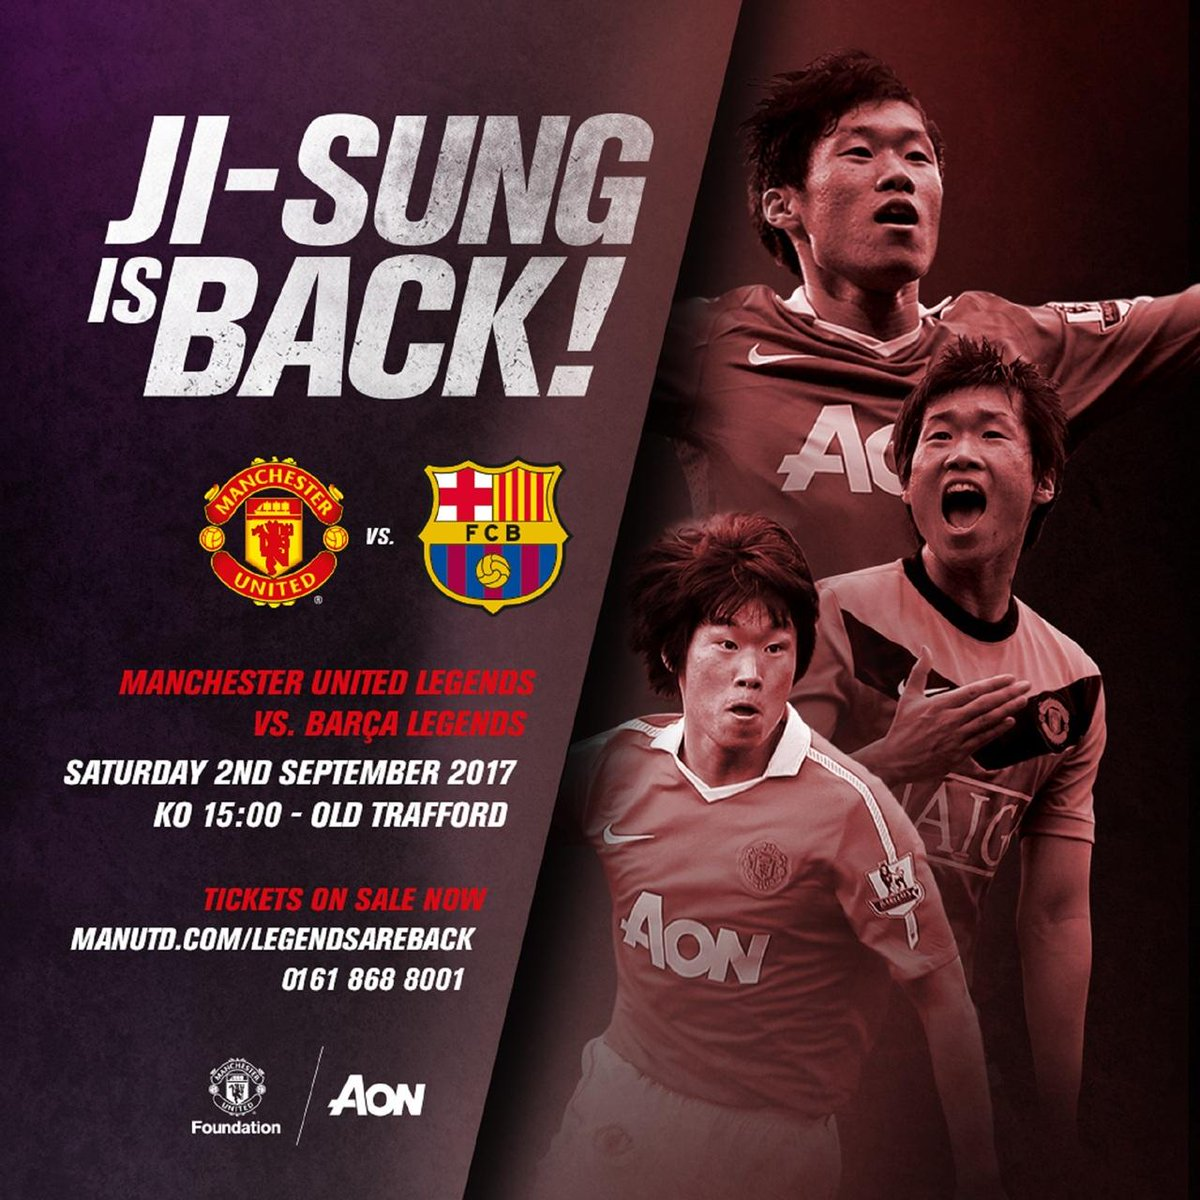 #MUFC Legends face Barcelona at the Nou Camp on Friday - and Ji-sung Park will be among those featuring for the Reds!